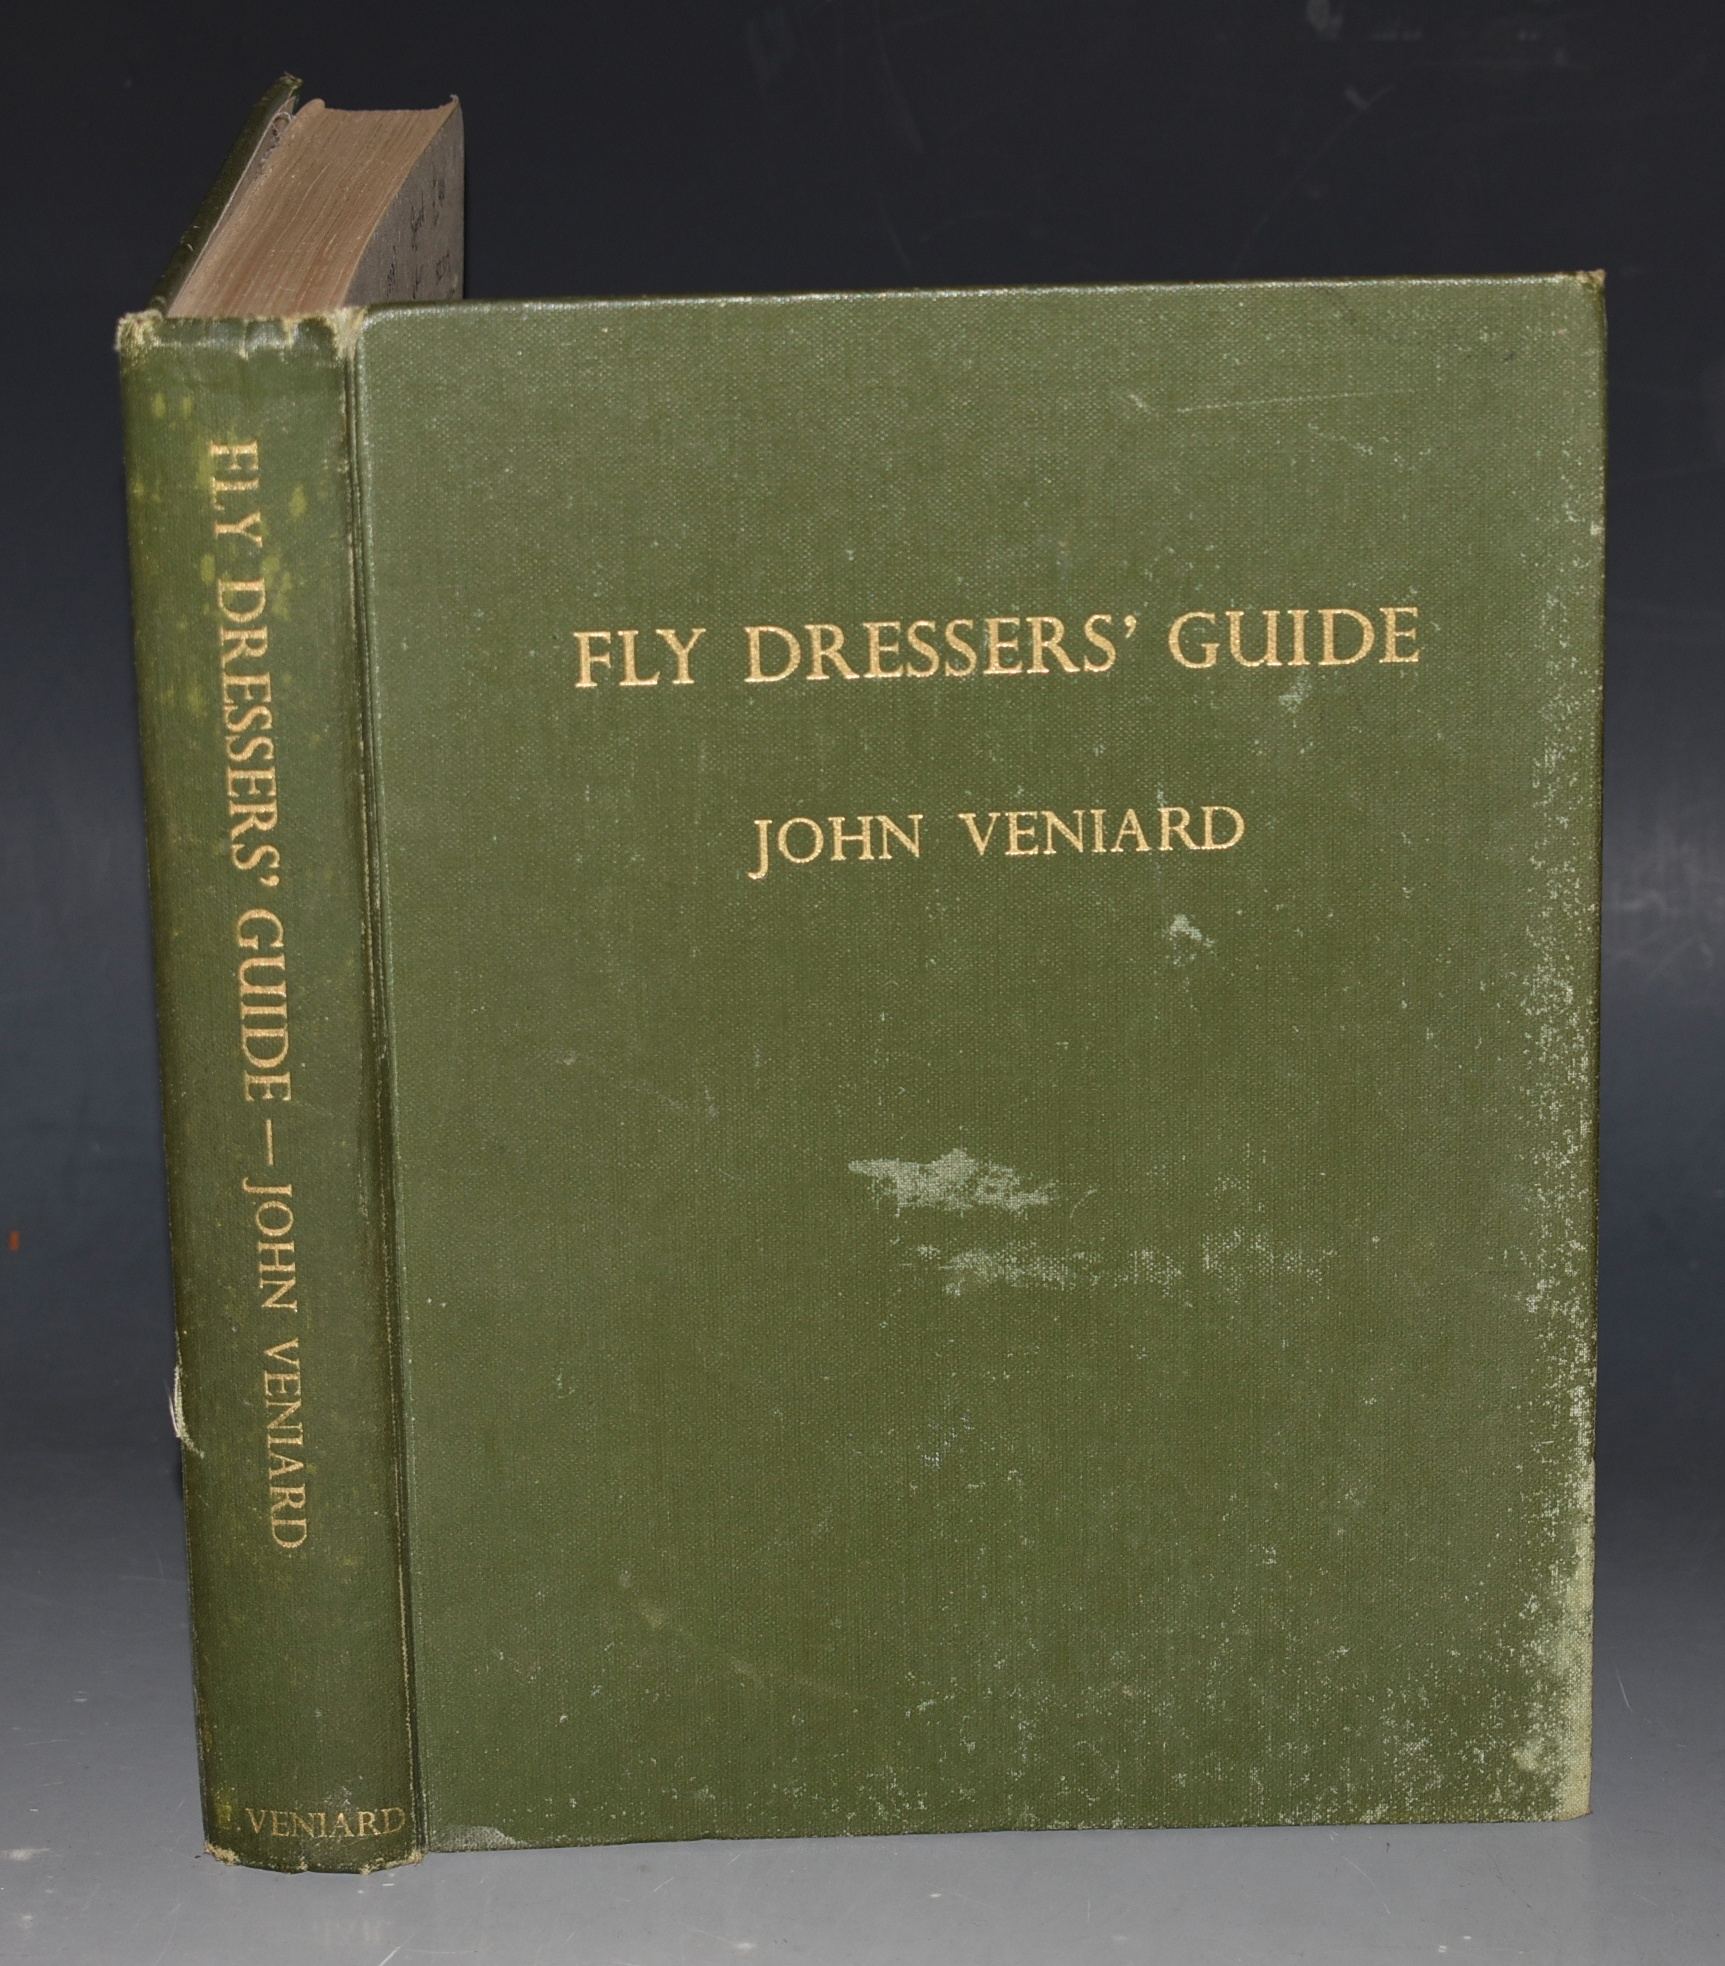 Image for Fly Dressers' Guide. WITH SIGNED AUTHORS LETTER.